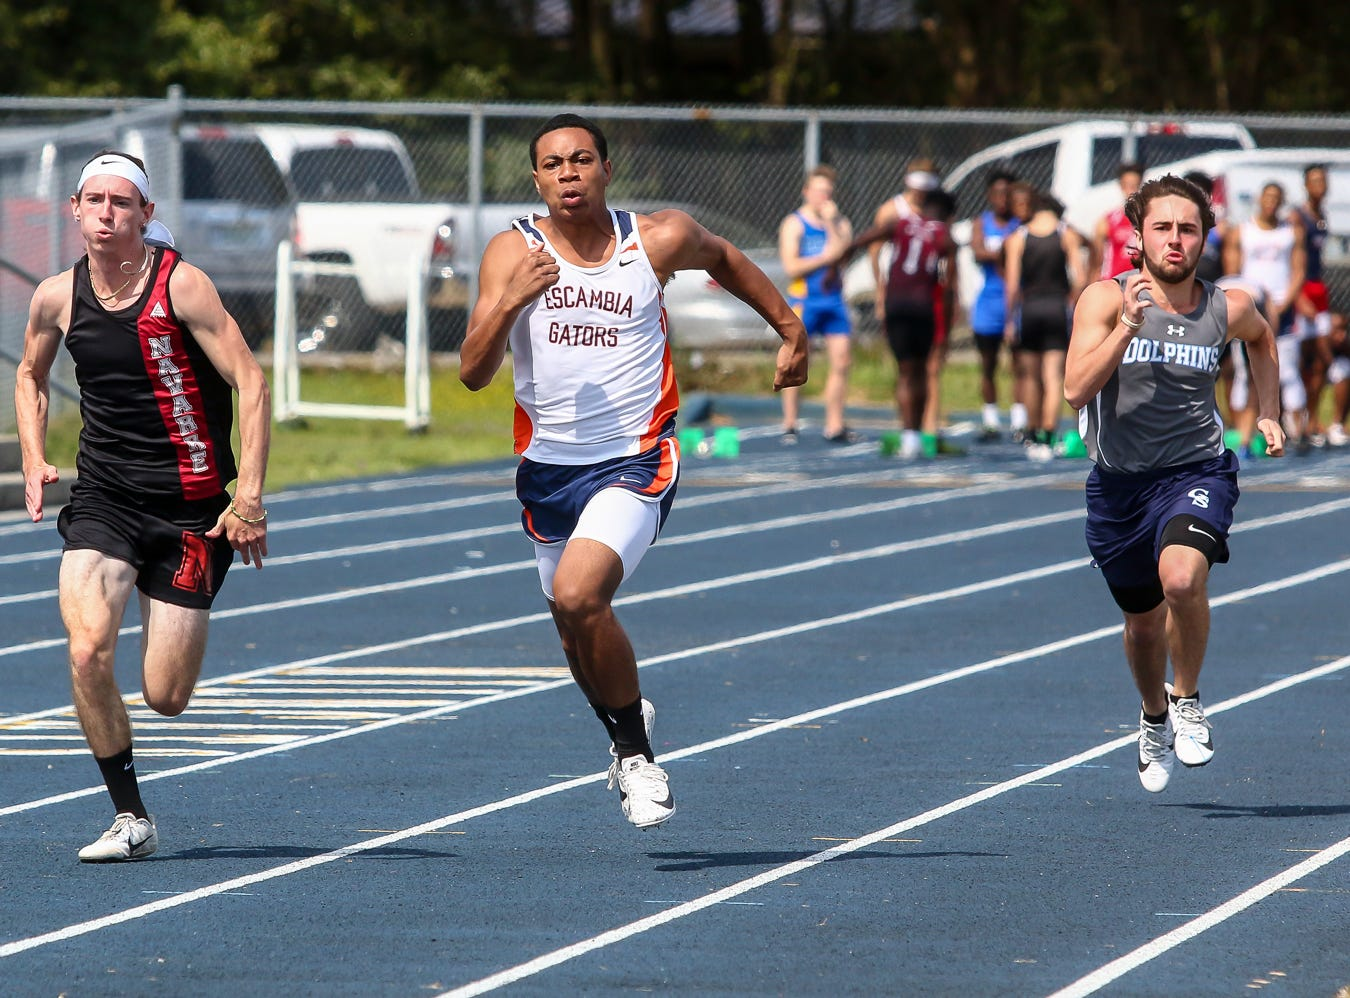 Athletes compete in the 100m dash on Saturday, March 9, 2019, during the Aggie Invitational at Washington High School.